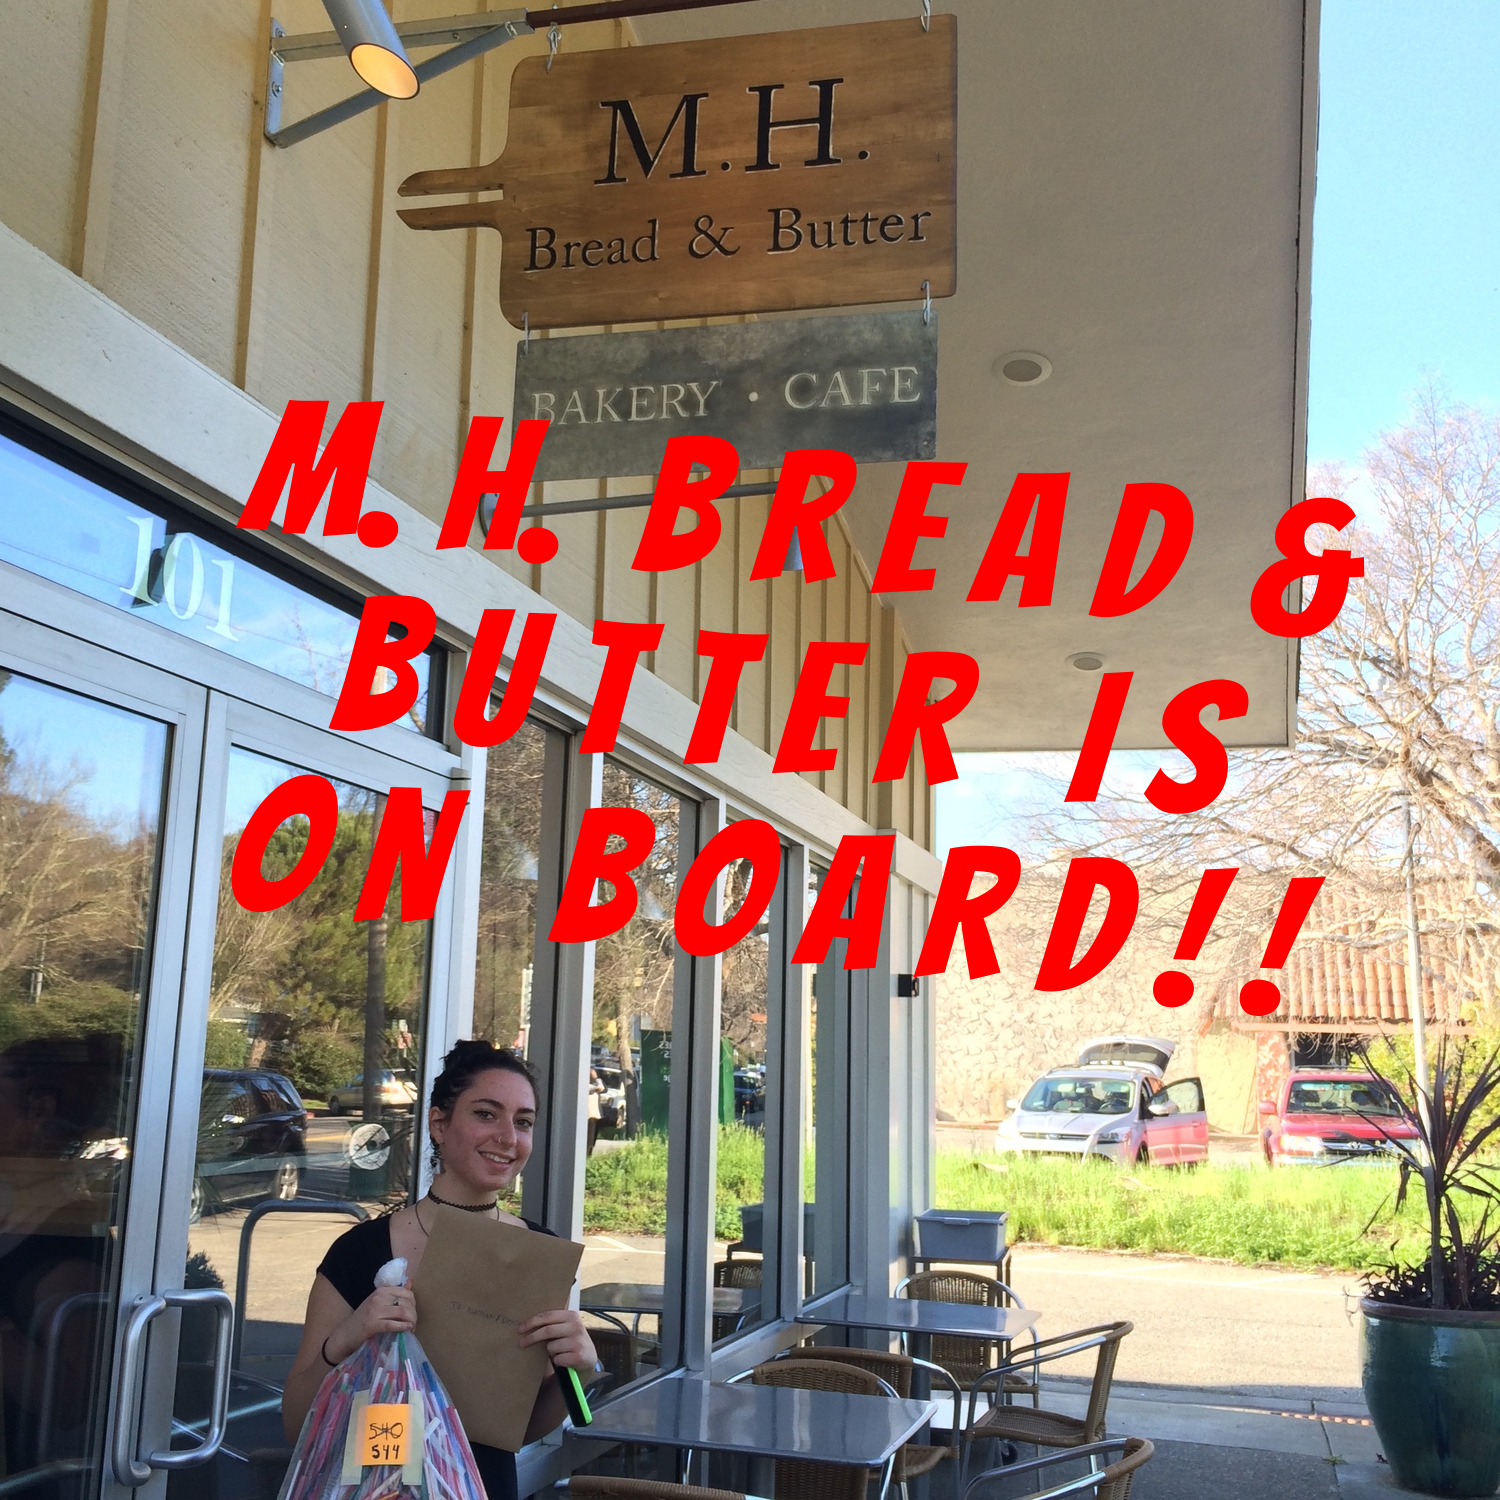 Audrey at M.H. Bread & Butter